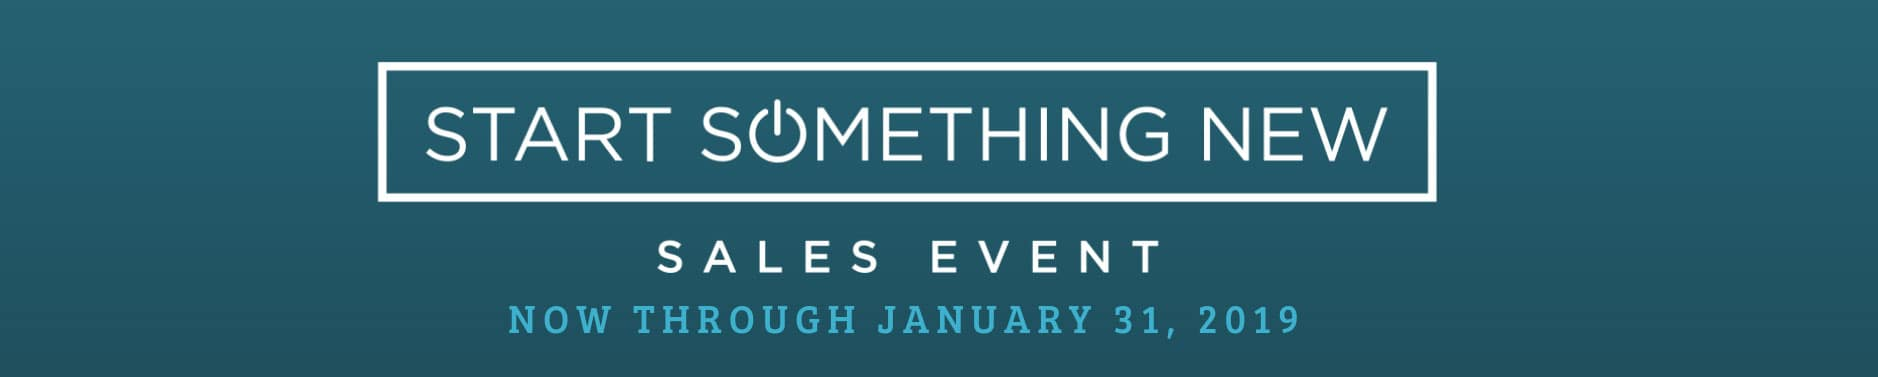 Start Something New Sales Event